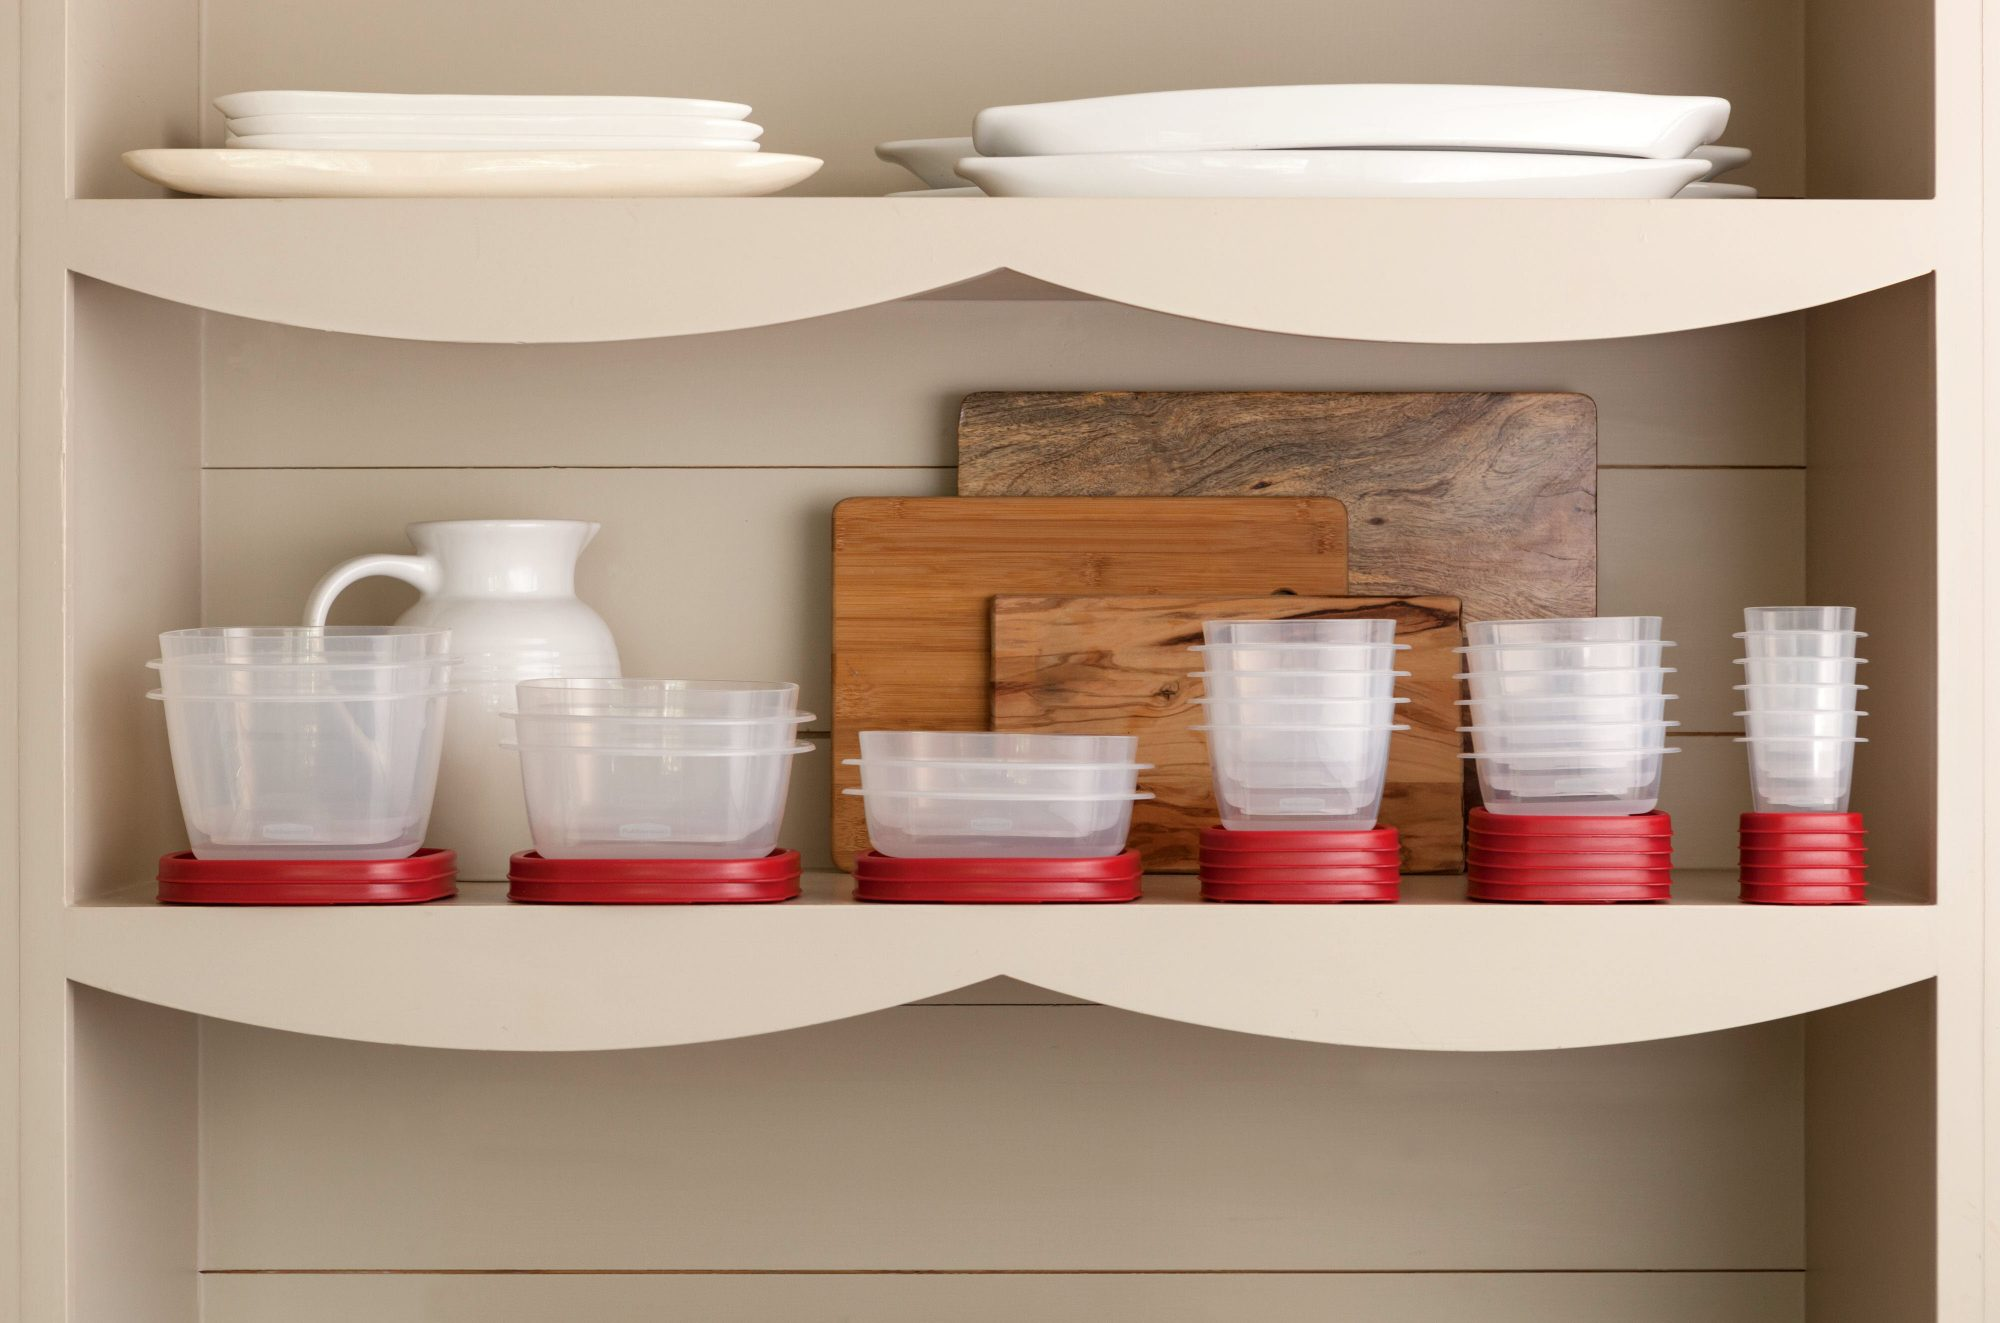 1777169-food-storage-easy-find-lid-40pc-set-pantry-in-use1.jpg